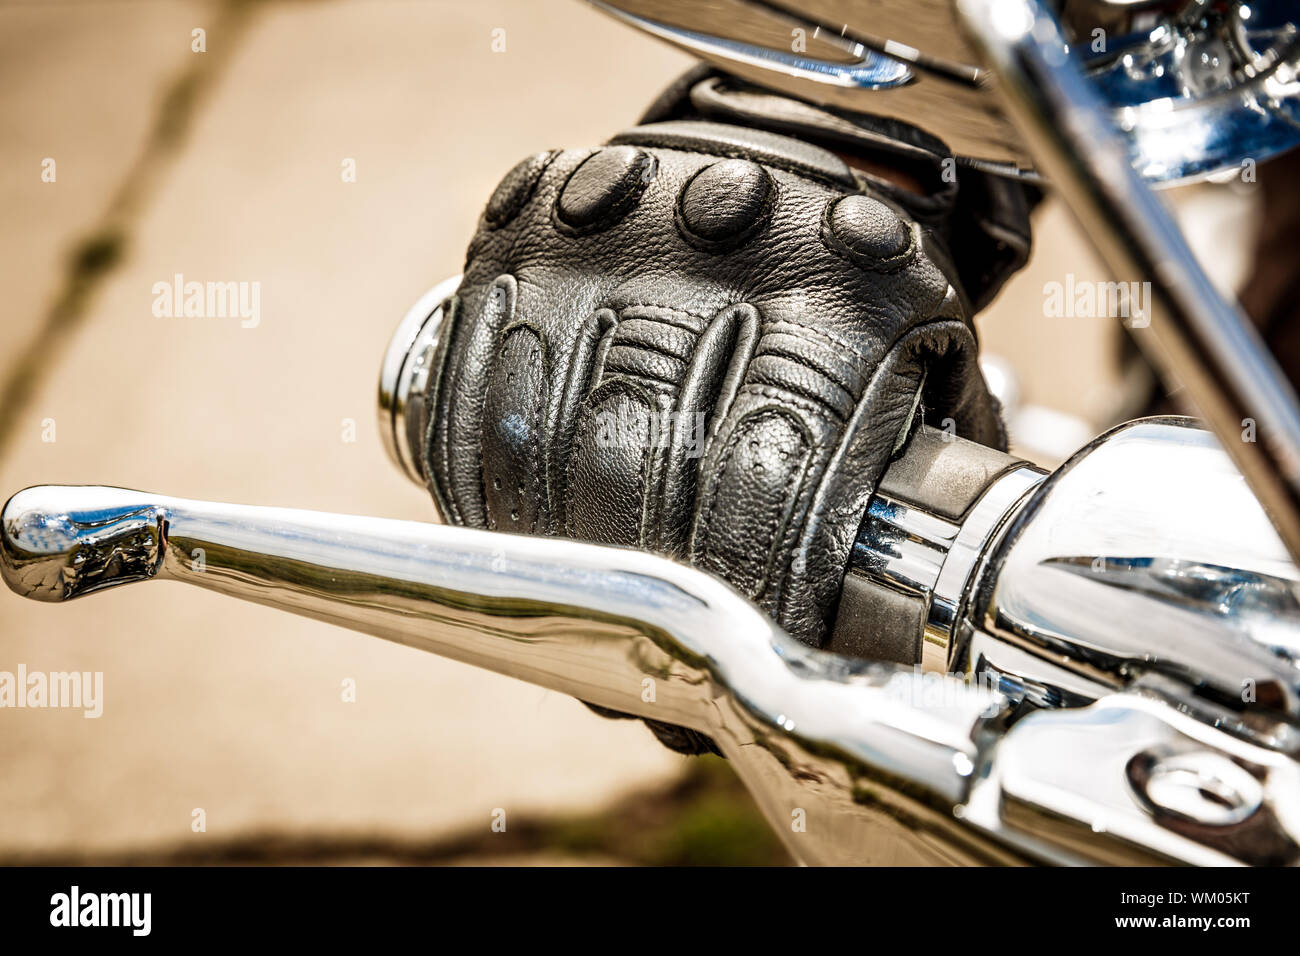 Human hand in a Motorcycle Racing Gloves holds a motorcycle throttle control. Hand protection from falls and accidents. Stock Photo